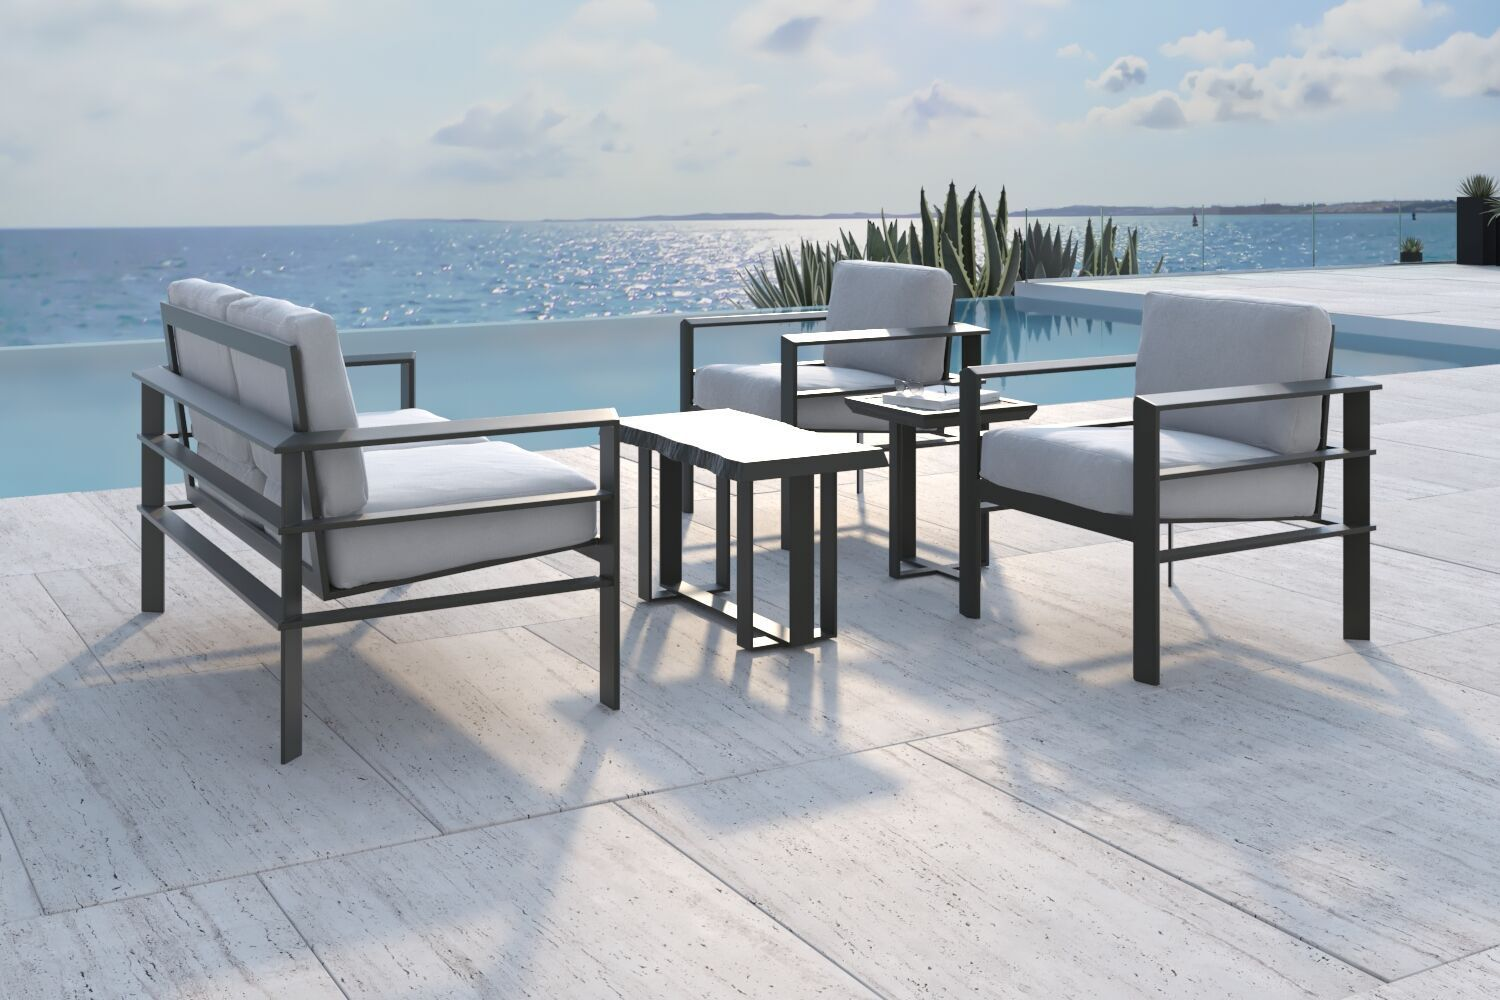 Pin by Castelle on Vertice Collection | Luxury outdoor ... on Fine Living Patio Set id=61817